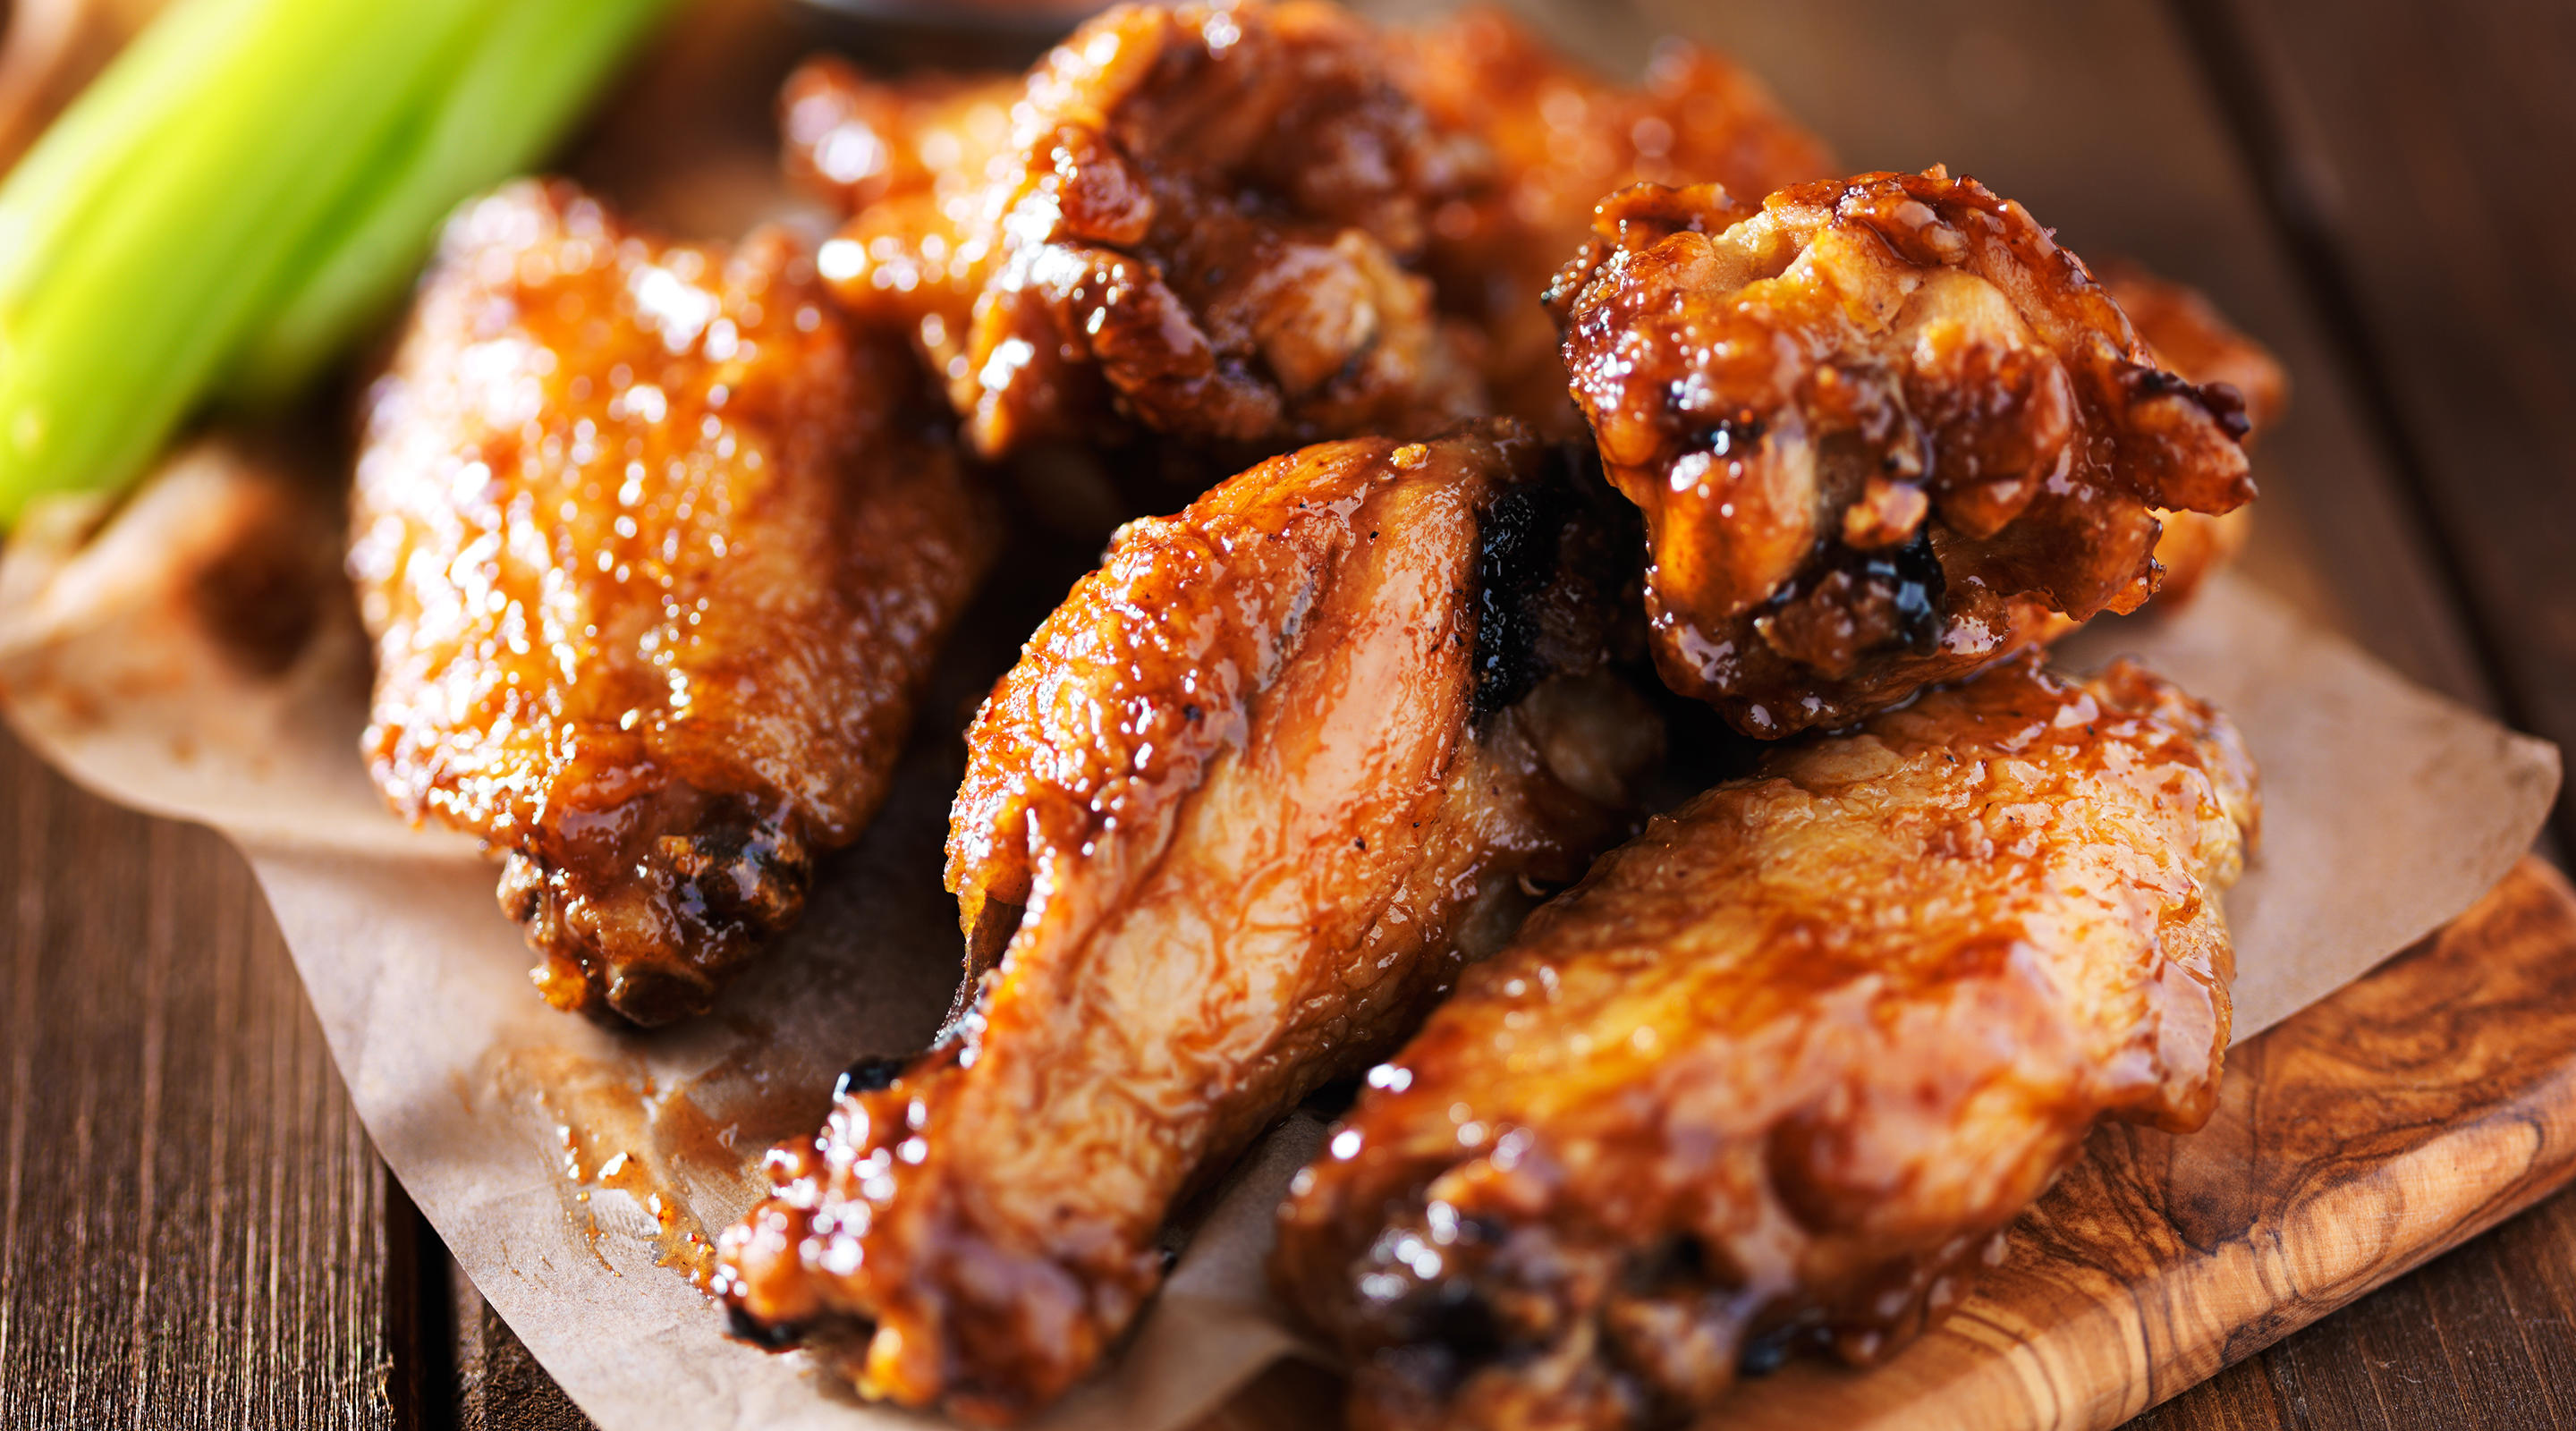 Barbecue chicken wings close up on wooden tray.